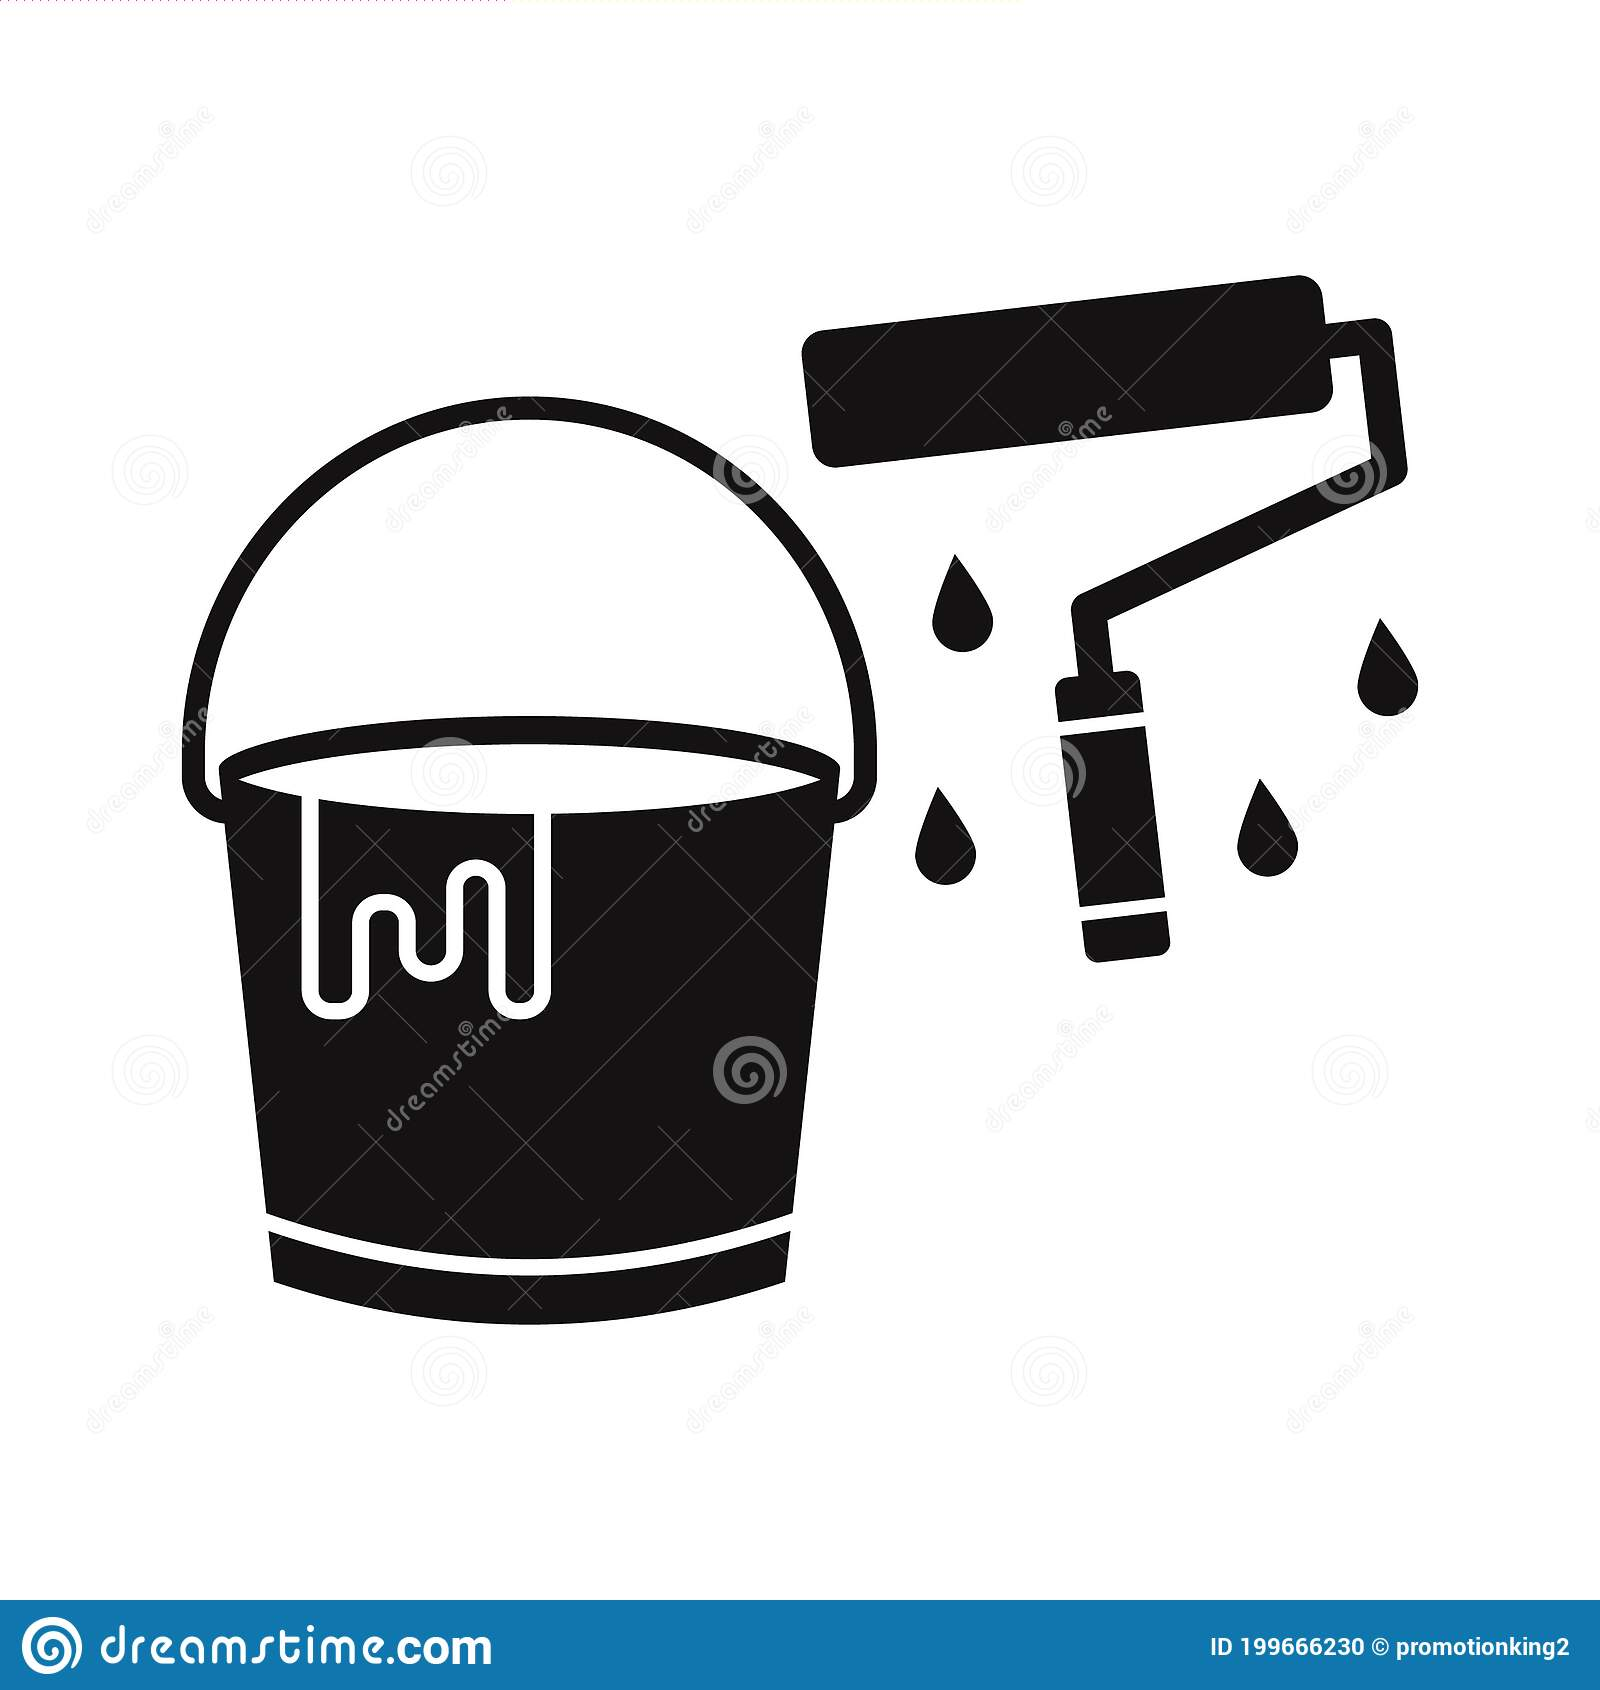 Paint Bucket Vector Icon Which Can Easily Modify Or Edit Stock Vector Illustration Of Bucket Nnnpaint 199666230